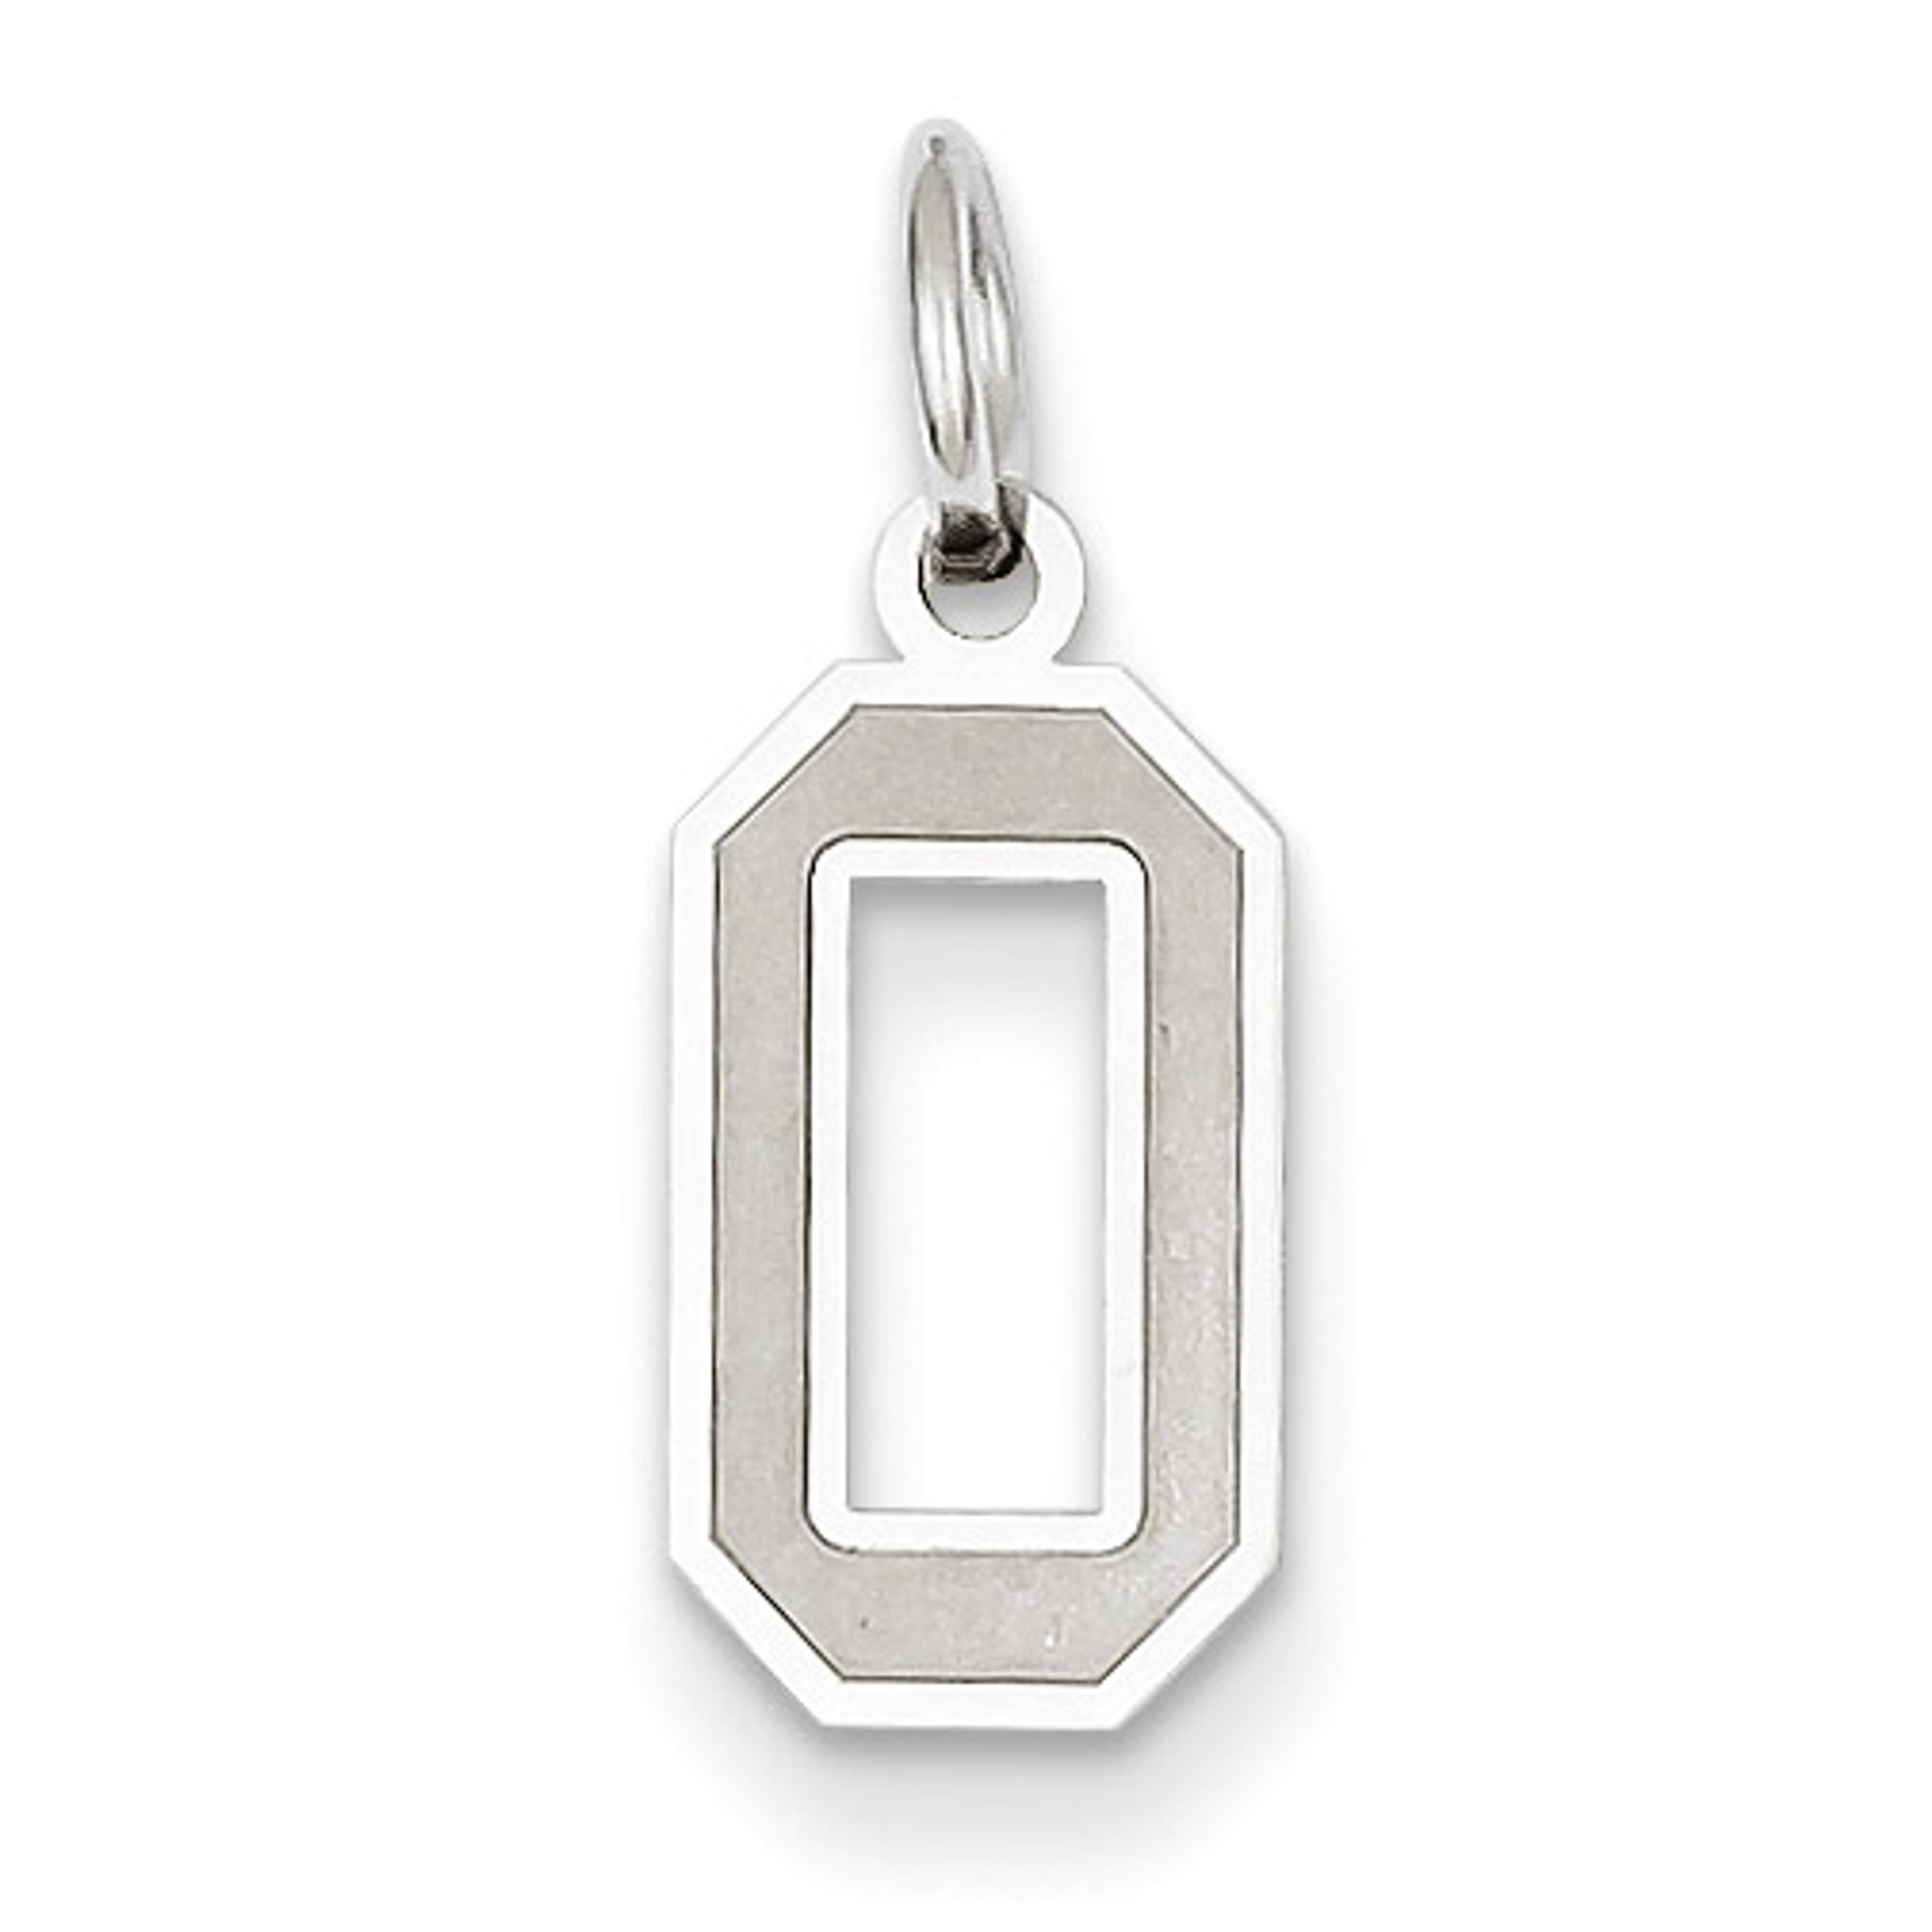 14K White Gold Charm Pendant Themed 0 19 mm 7 Small Satin Number